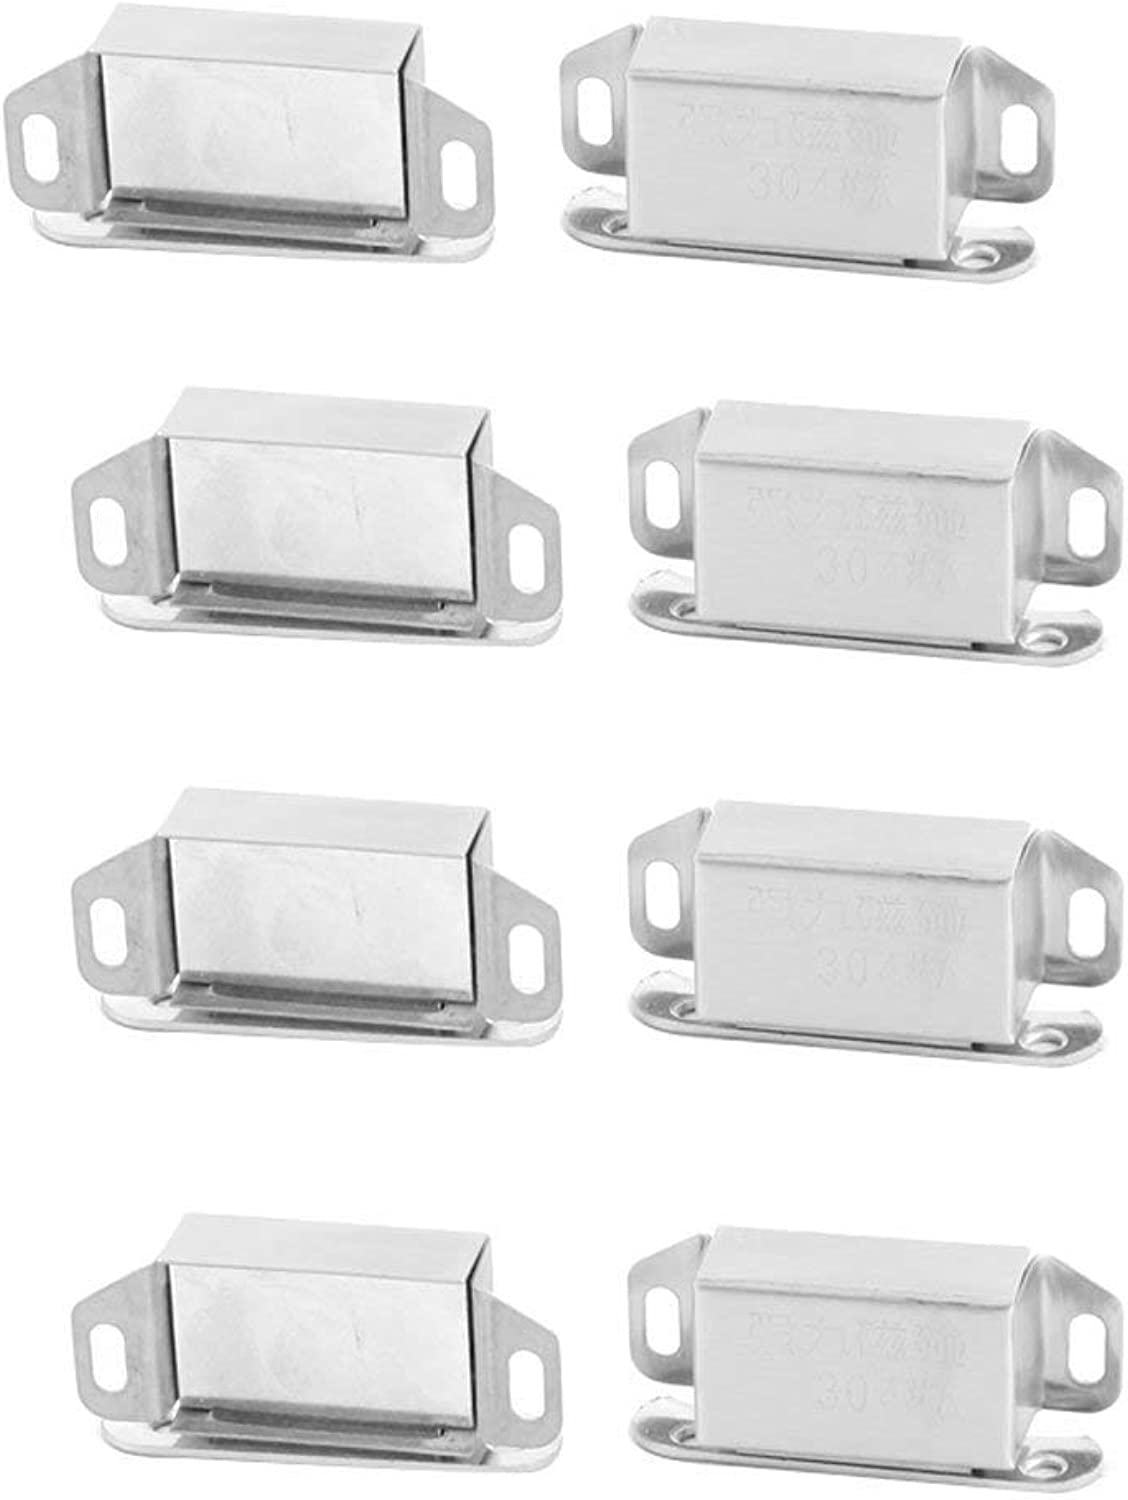 Stainless Steel Home Door Wardrobe Closet Stopper Holder Magnetic Catch Latch 8pcs